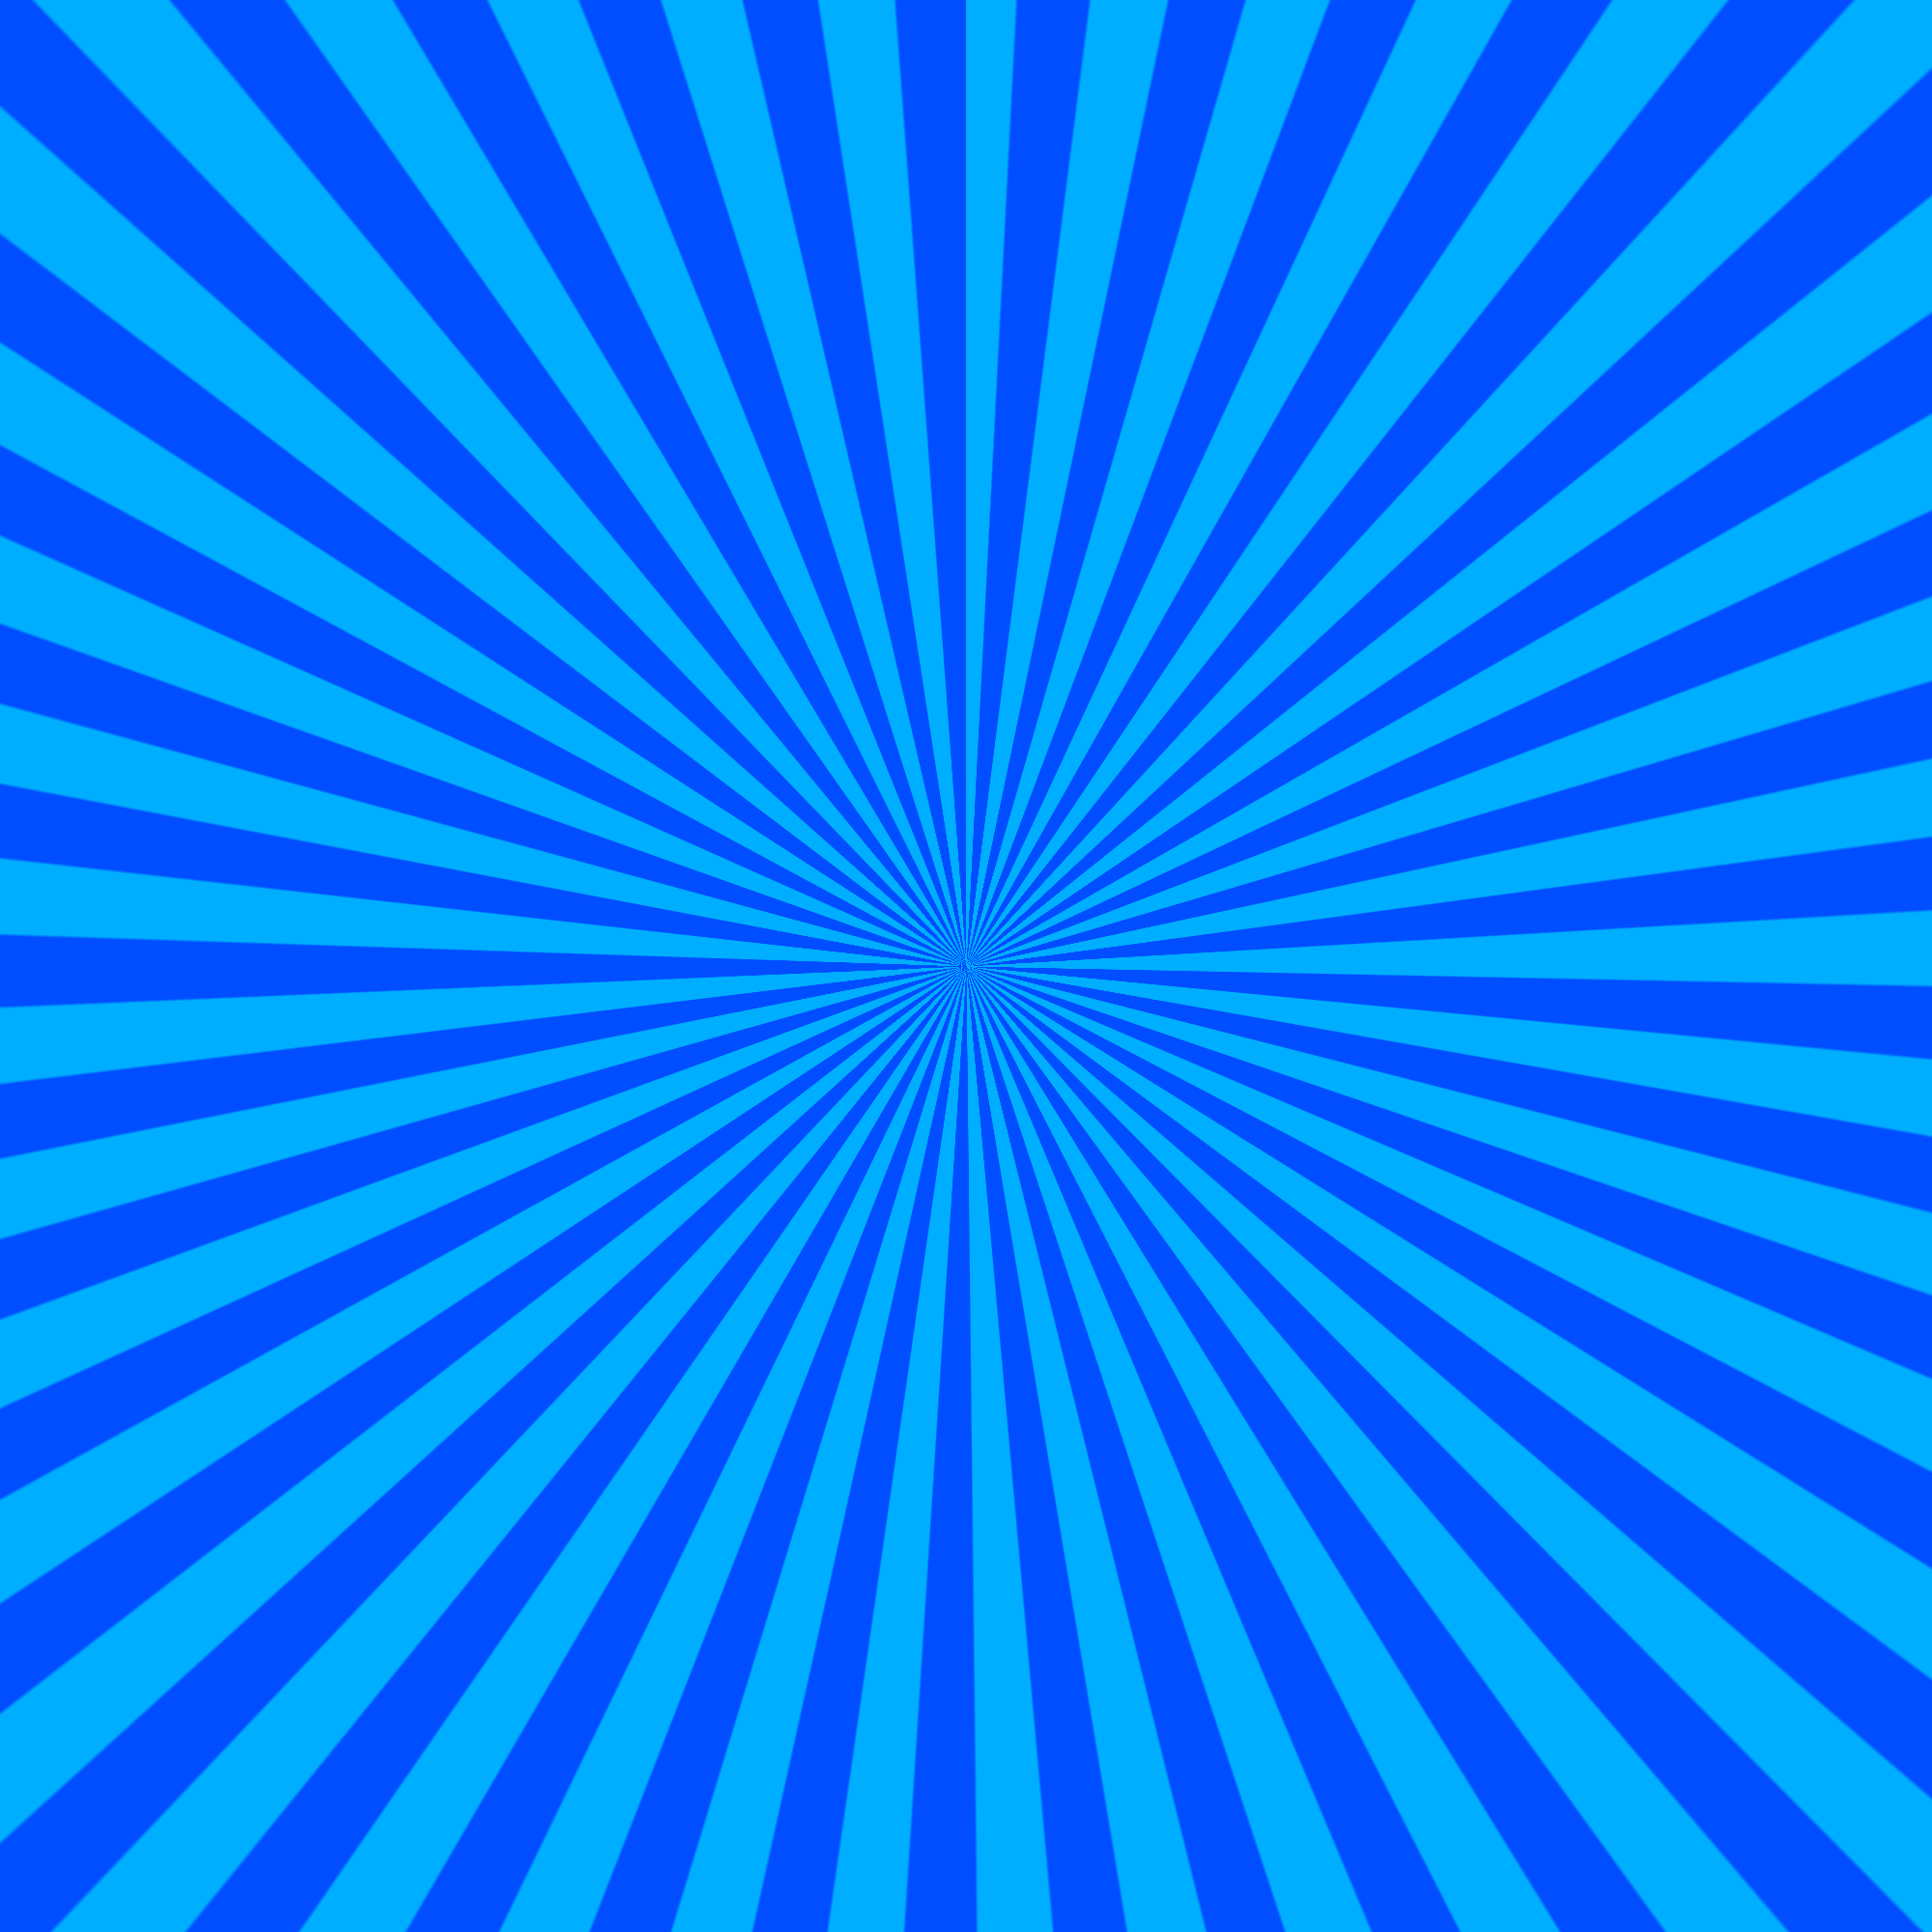 Blue Sunburst Photoshop Background Png image #24705